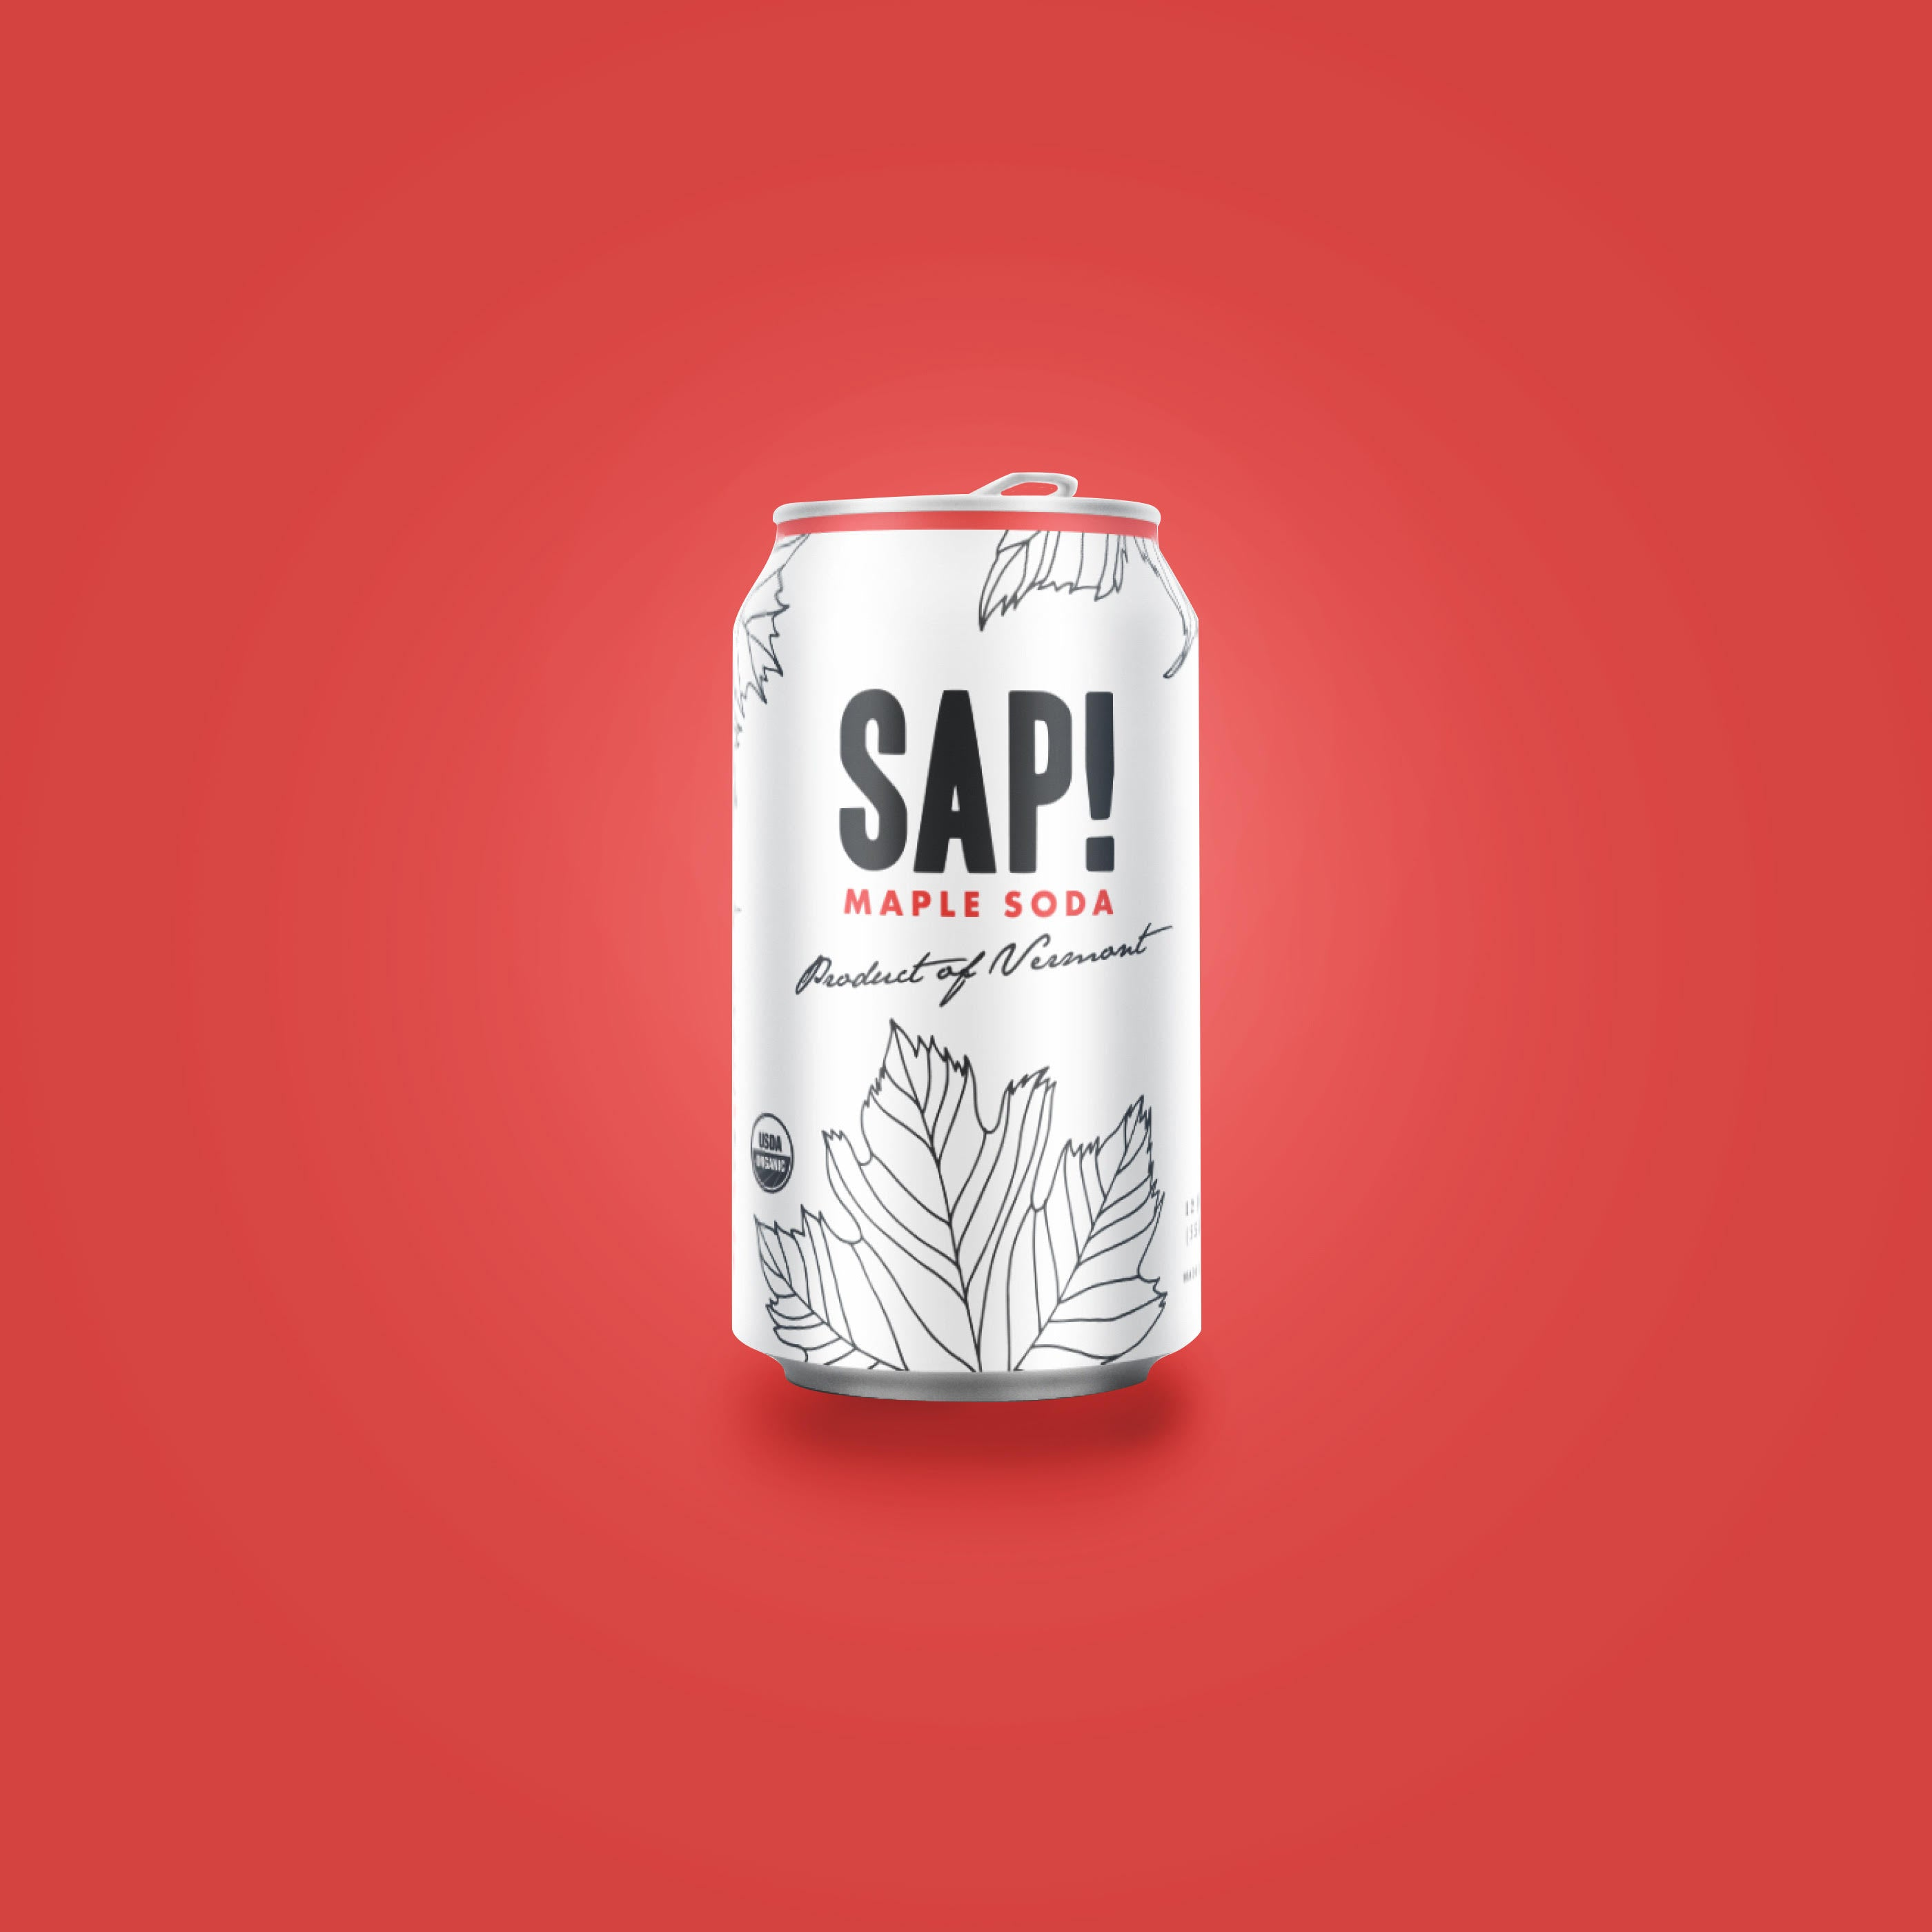 Sap! Maple Soda - Case of 24